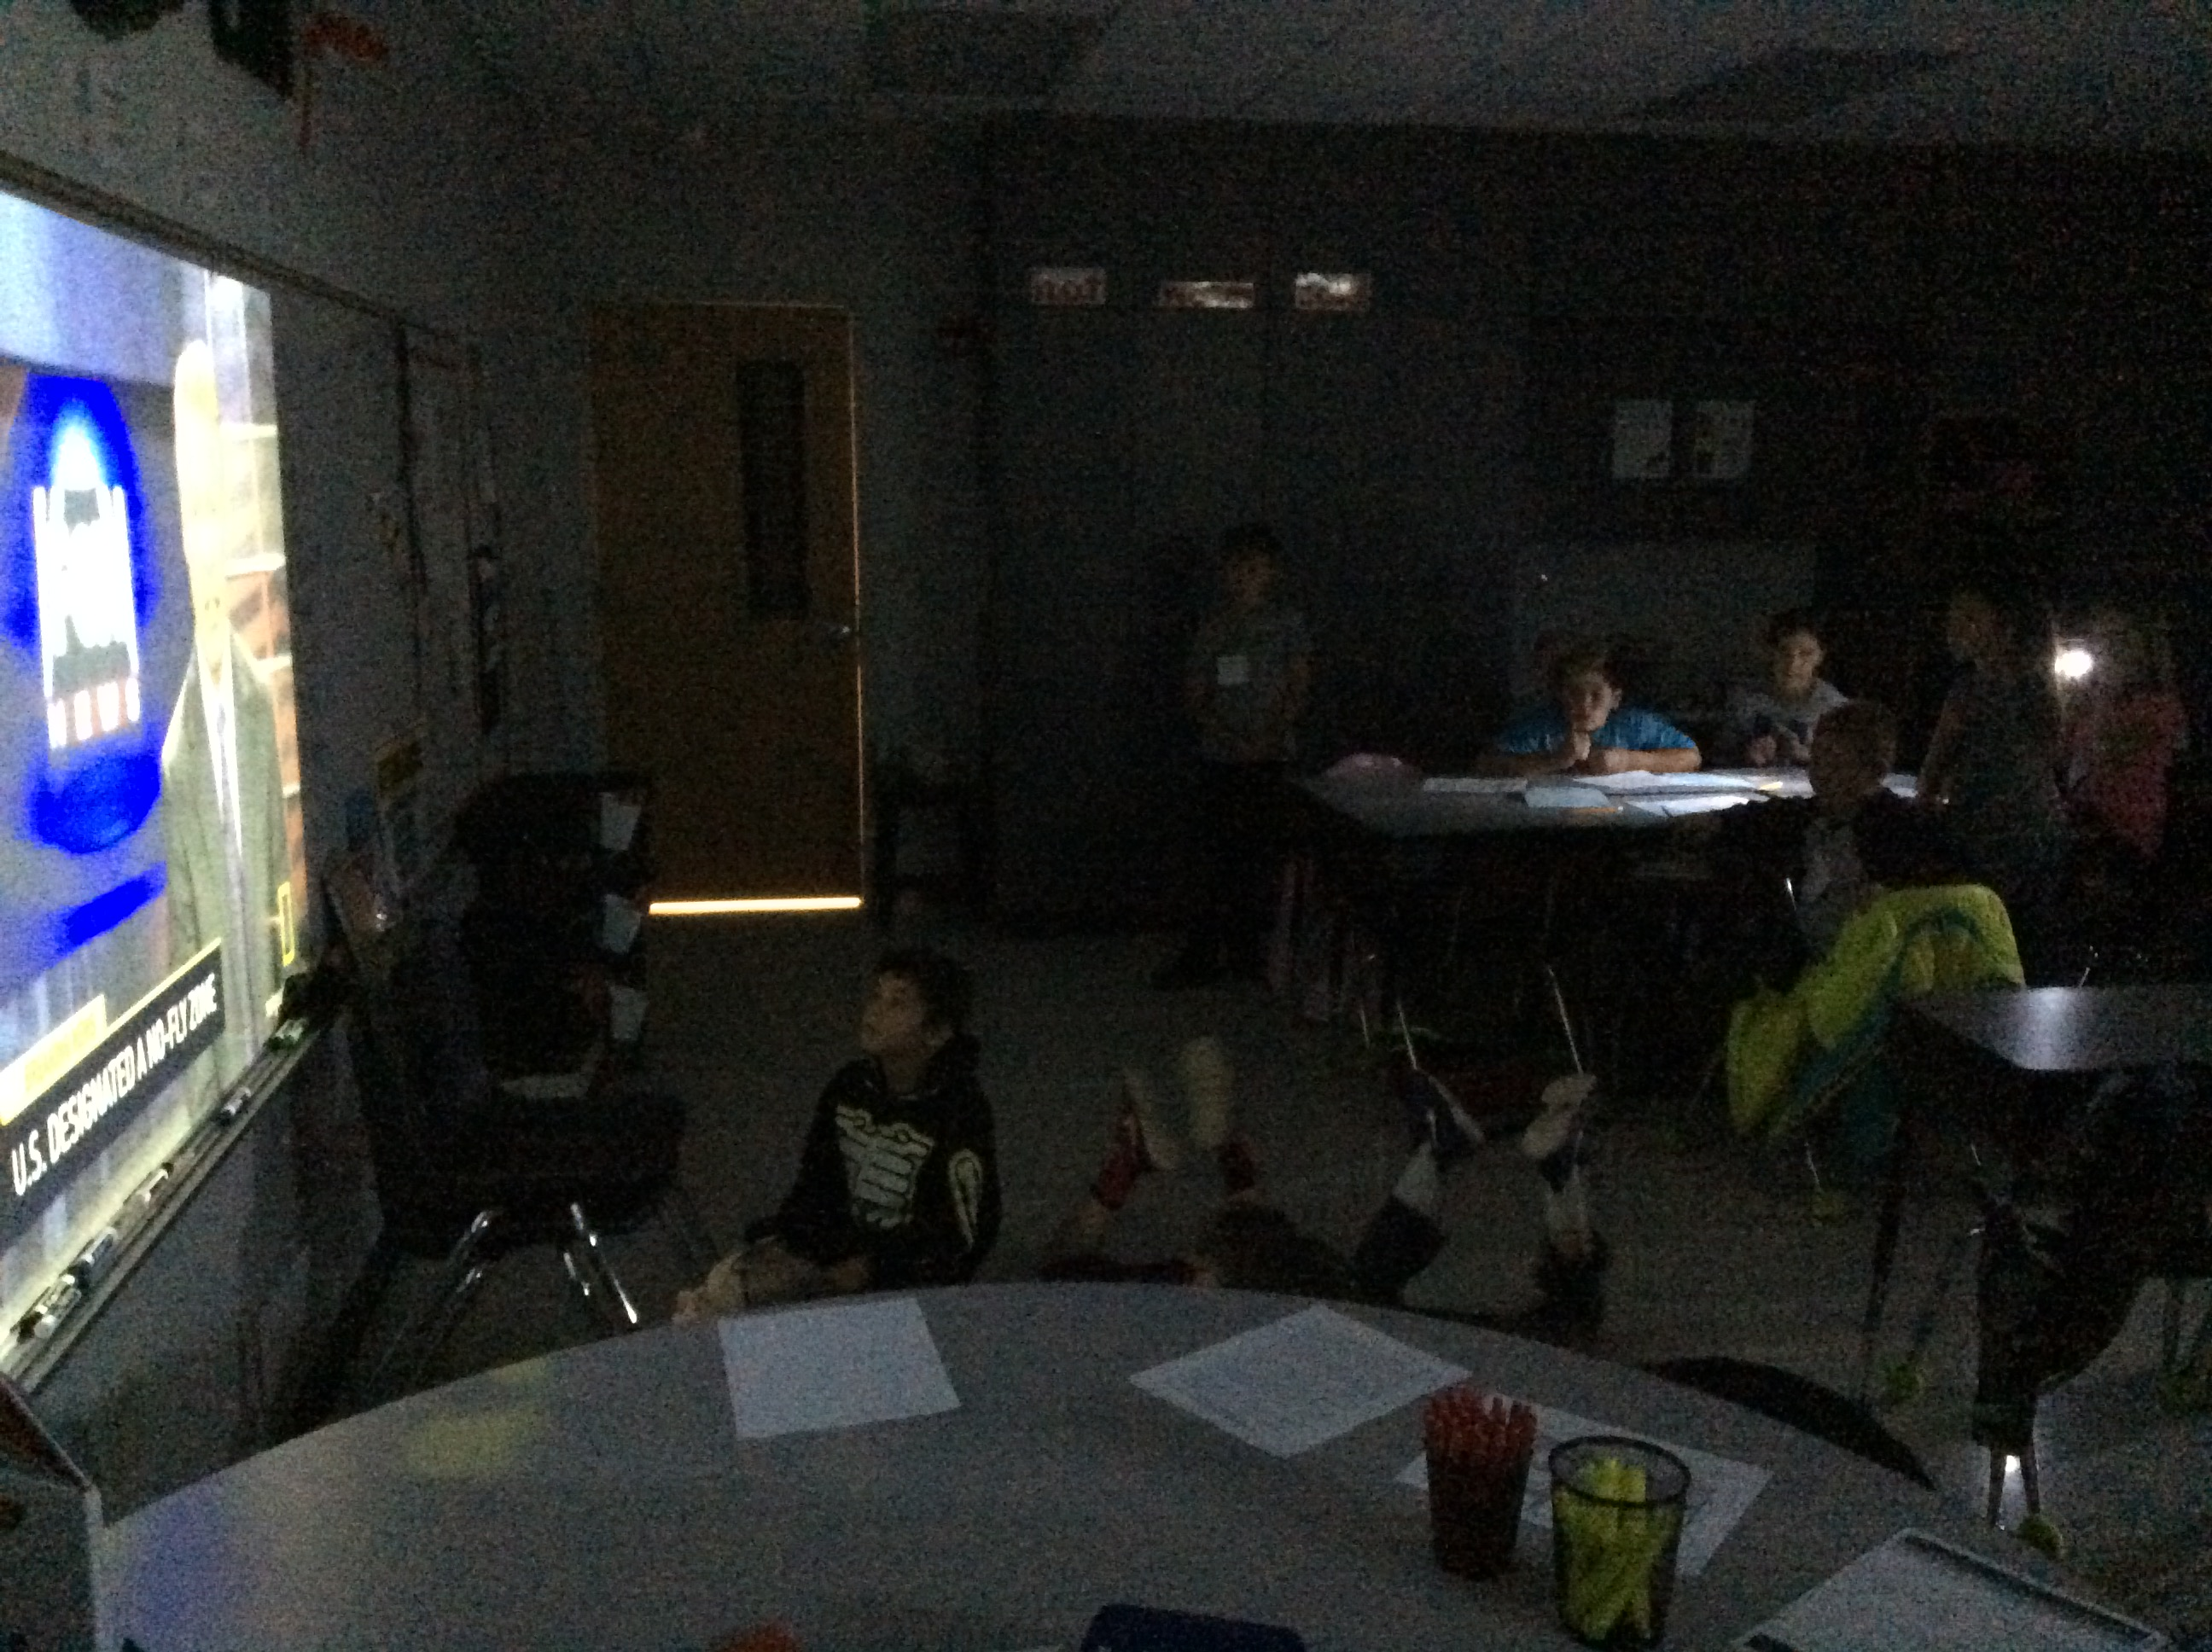 American Blackout Learning Experience: Students watch a news clip of what is taking place during the blackout.